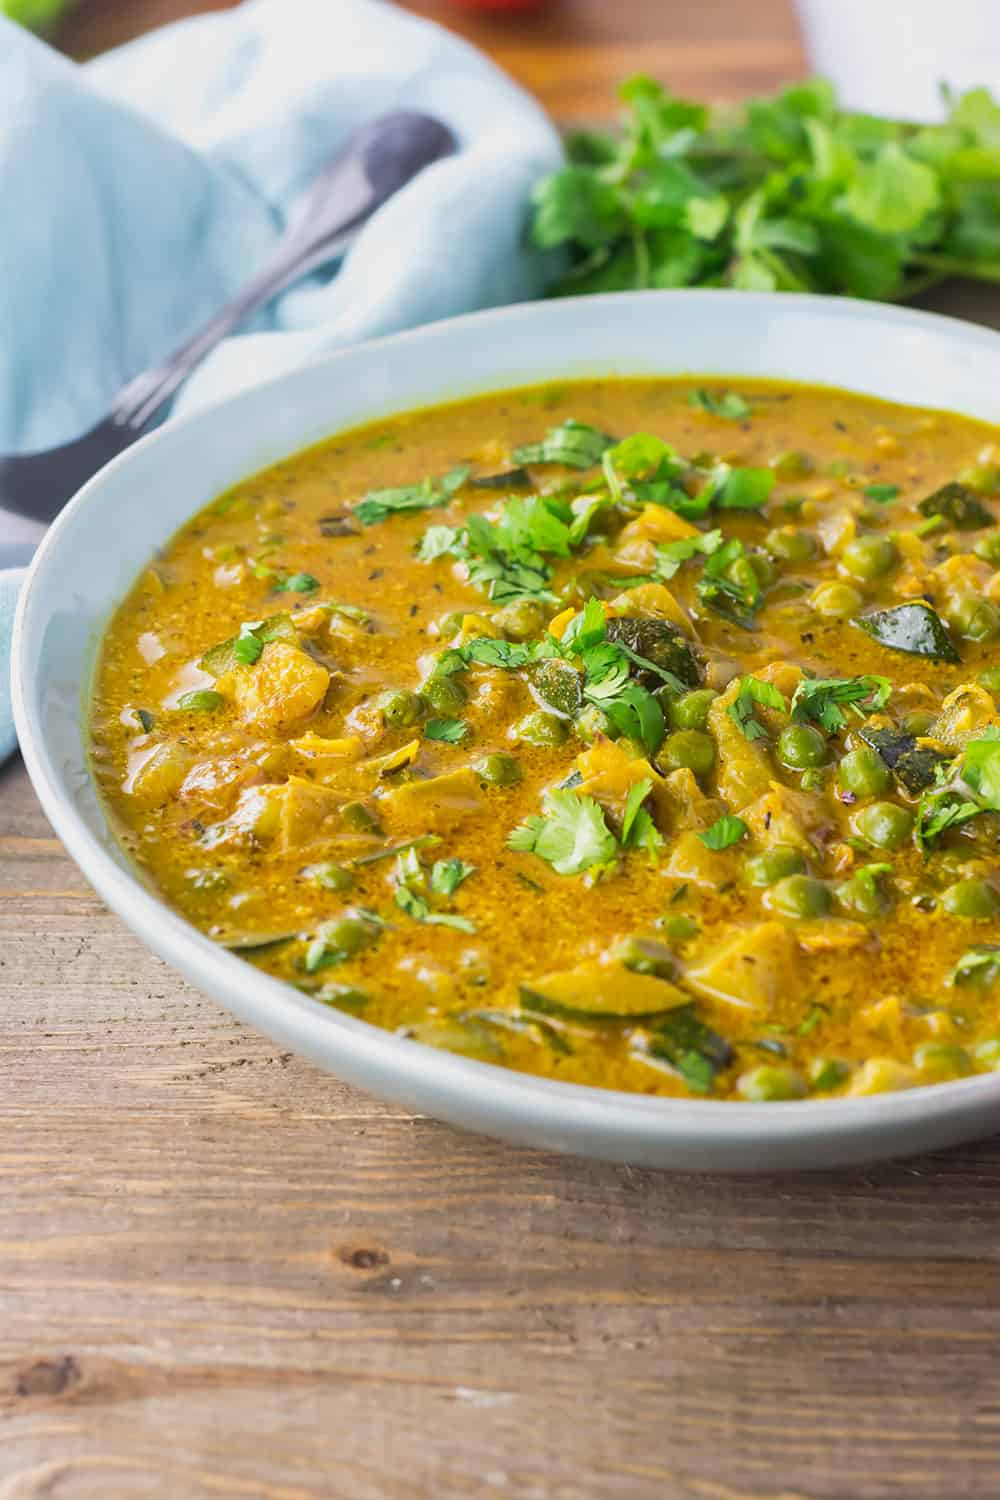 Zucchini and Peas Curry in a bowl